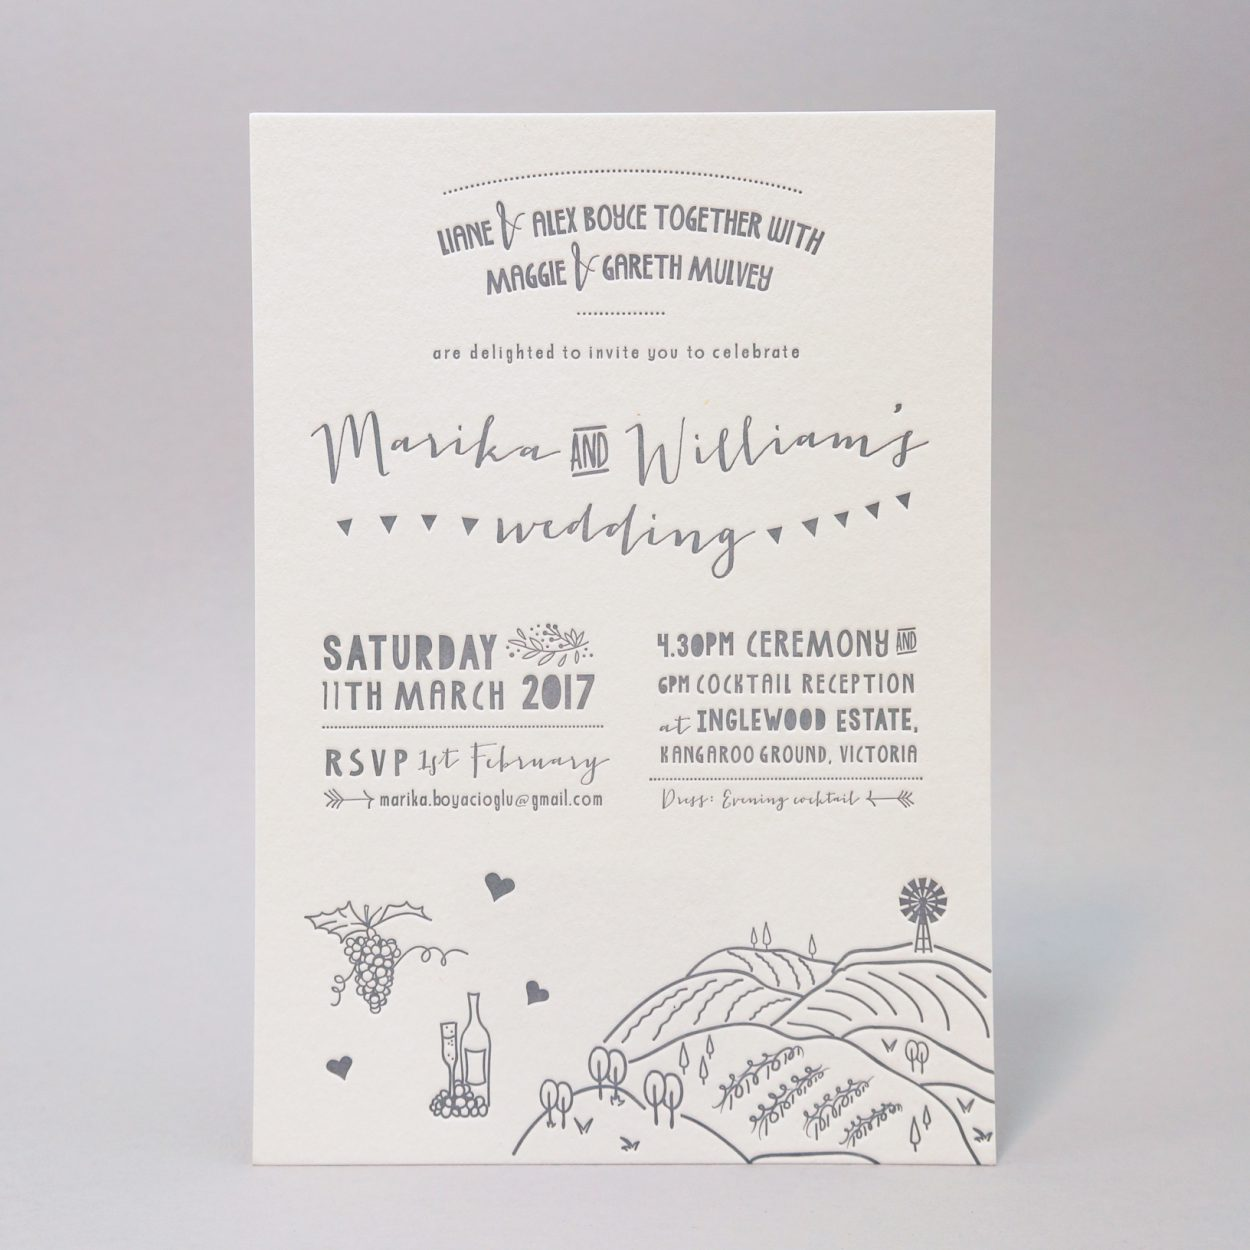 Letterpress-wedding-invitations-winery-vineyard-grey-marika+william